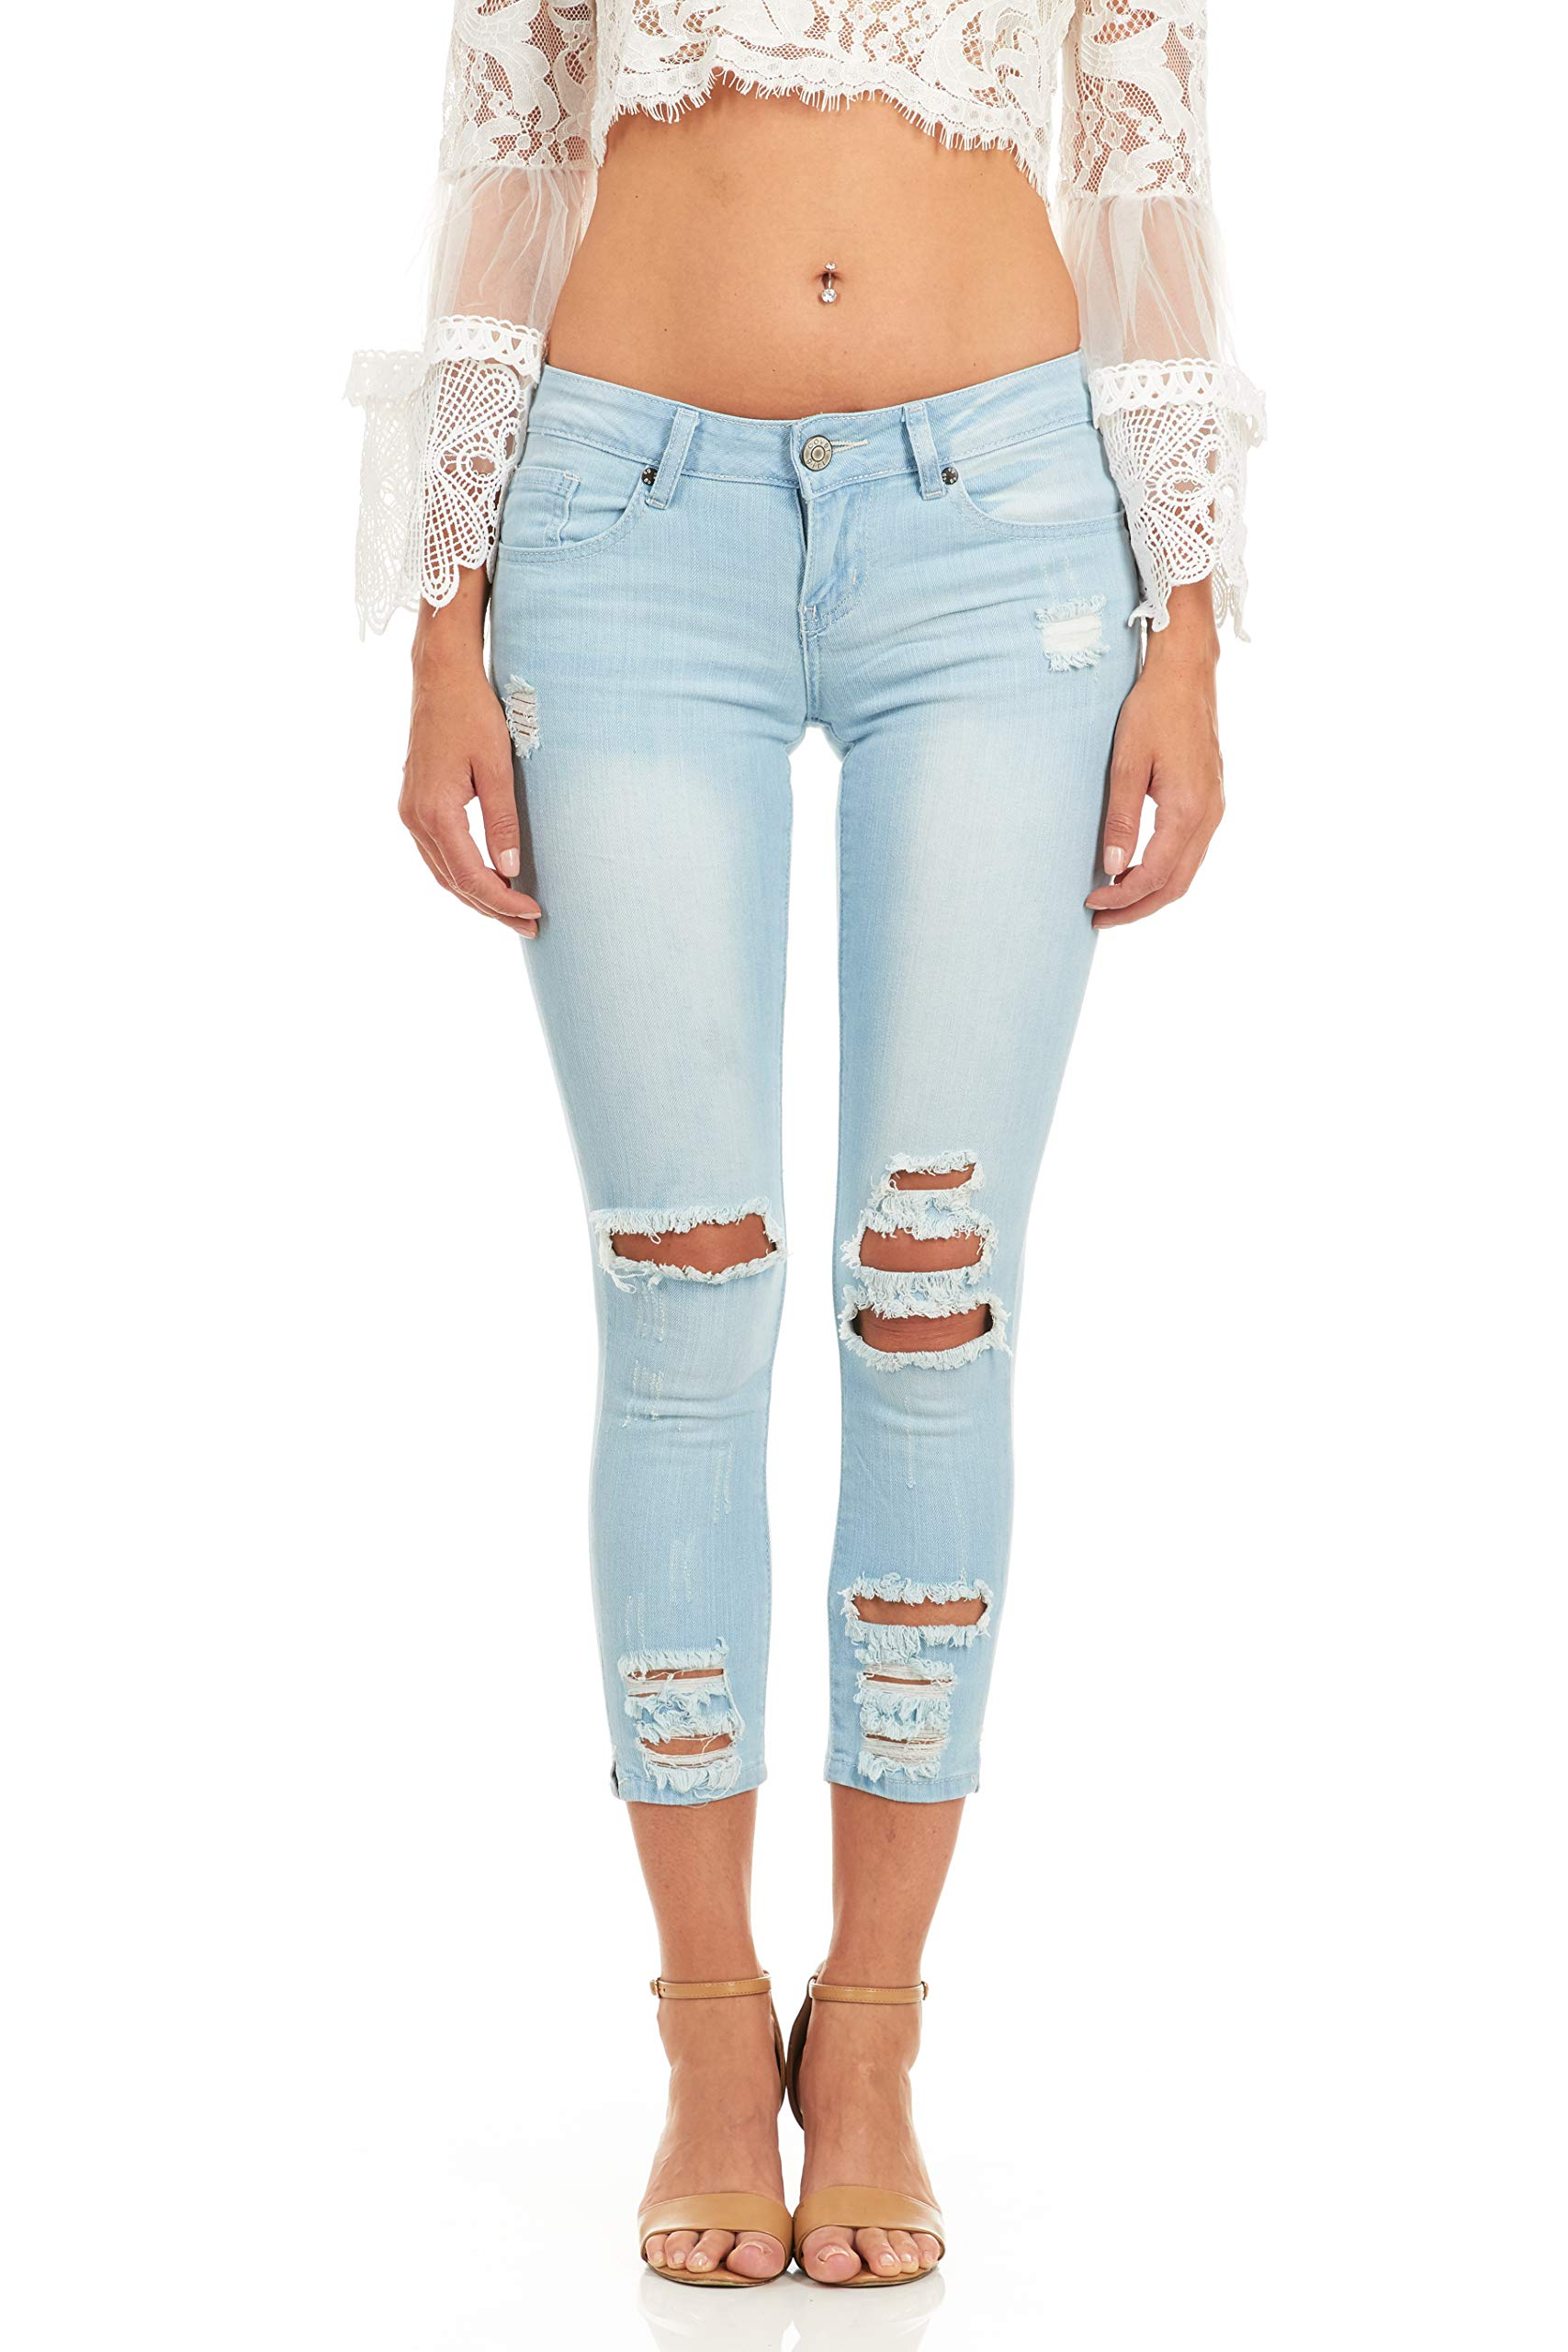 Cover Girl Women's Ripped Cropped Skinny Jeans, Baby Blue, 78